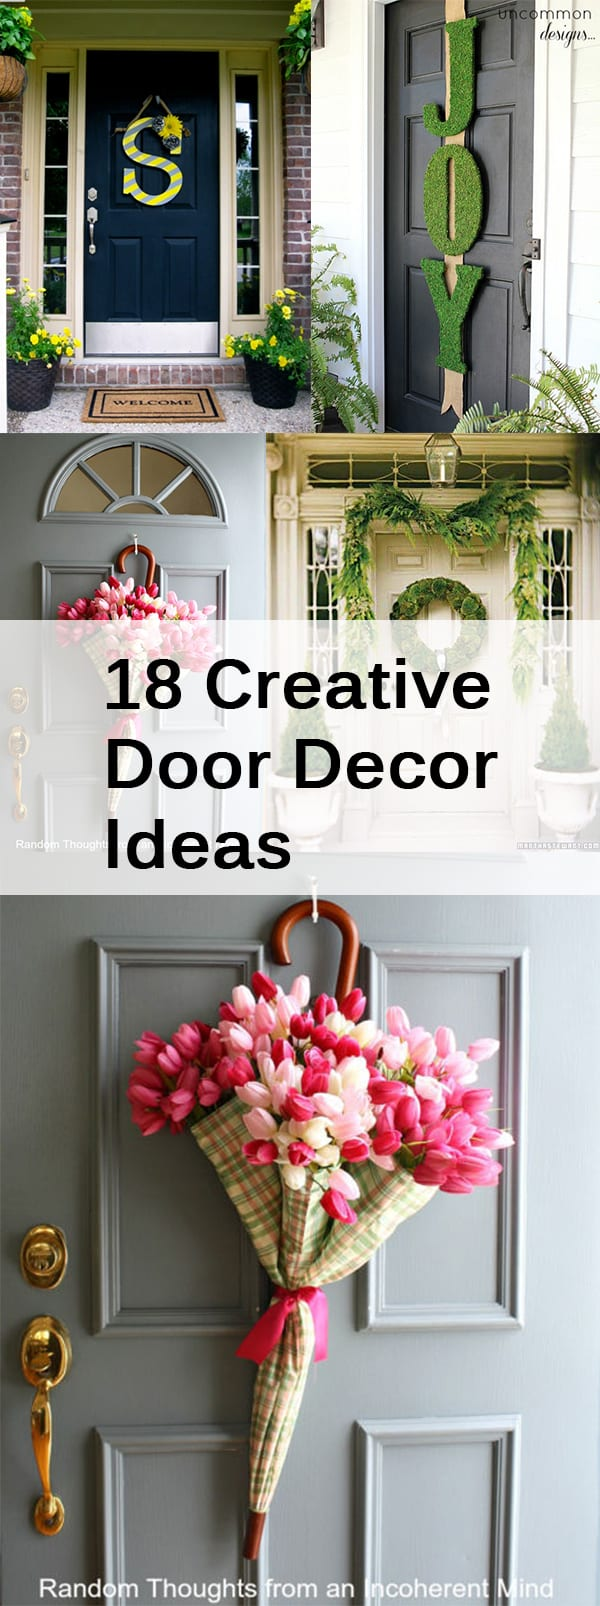 18 creative door decor ideas how to build it for New home decor ideas 2015